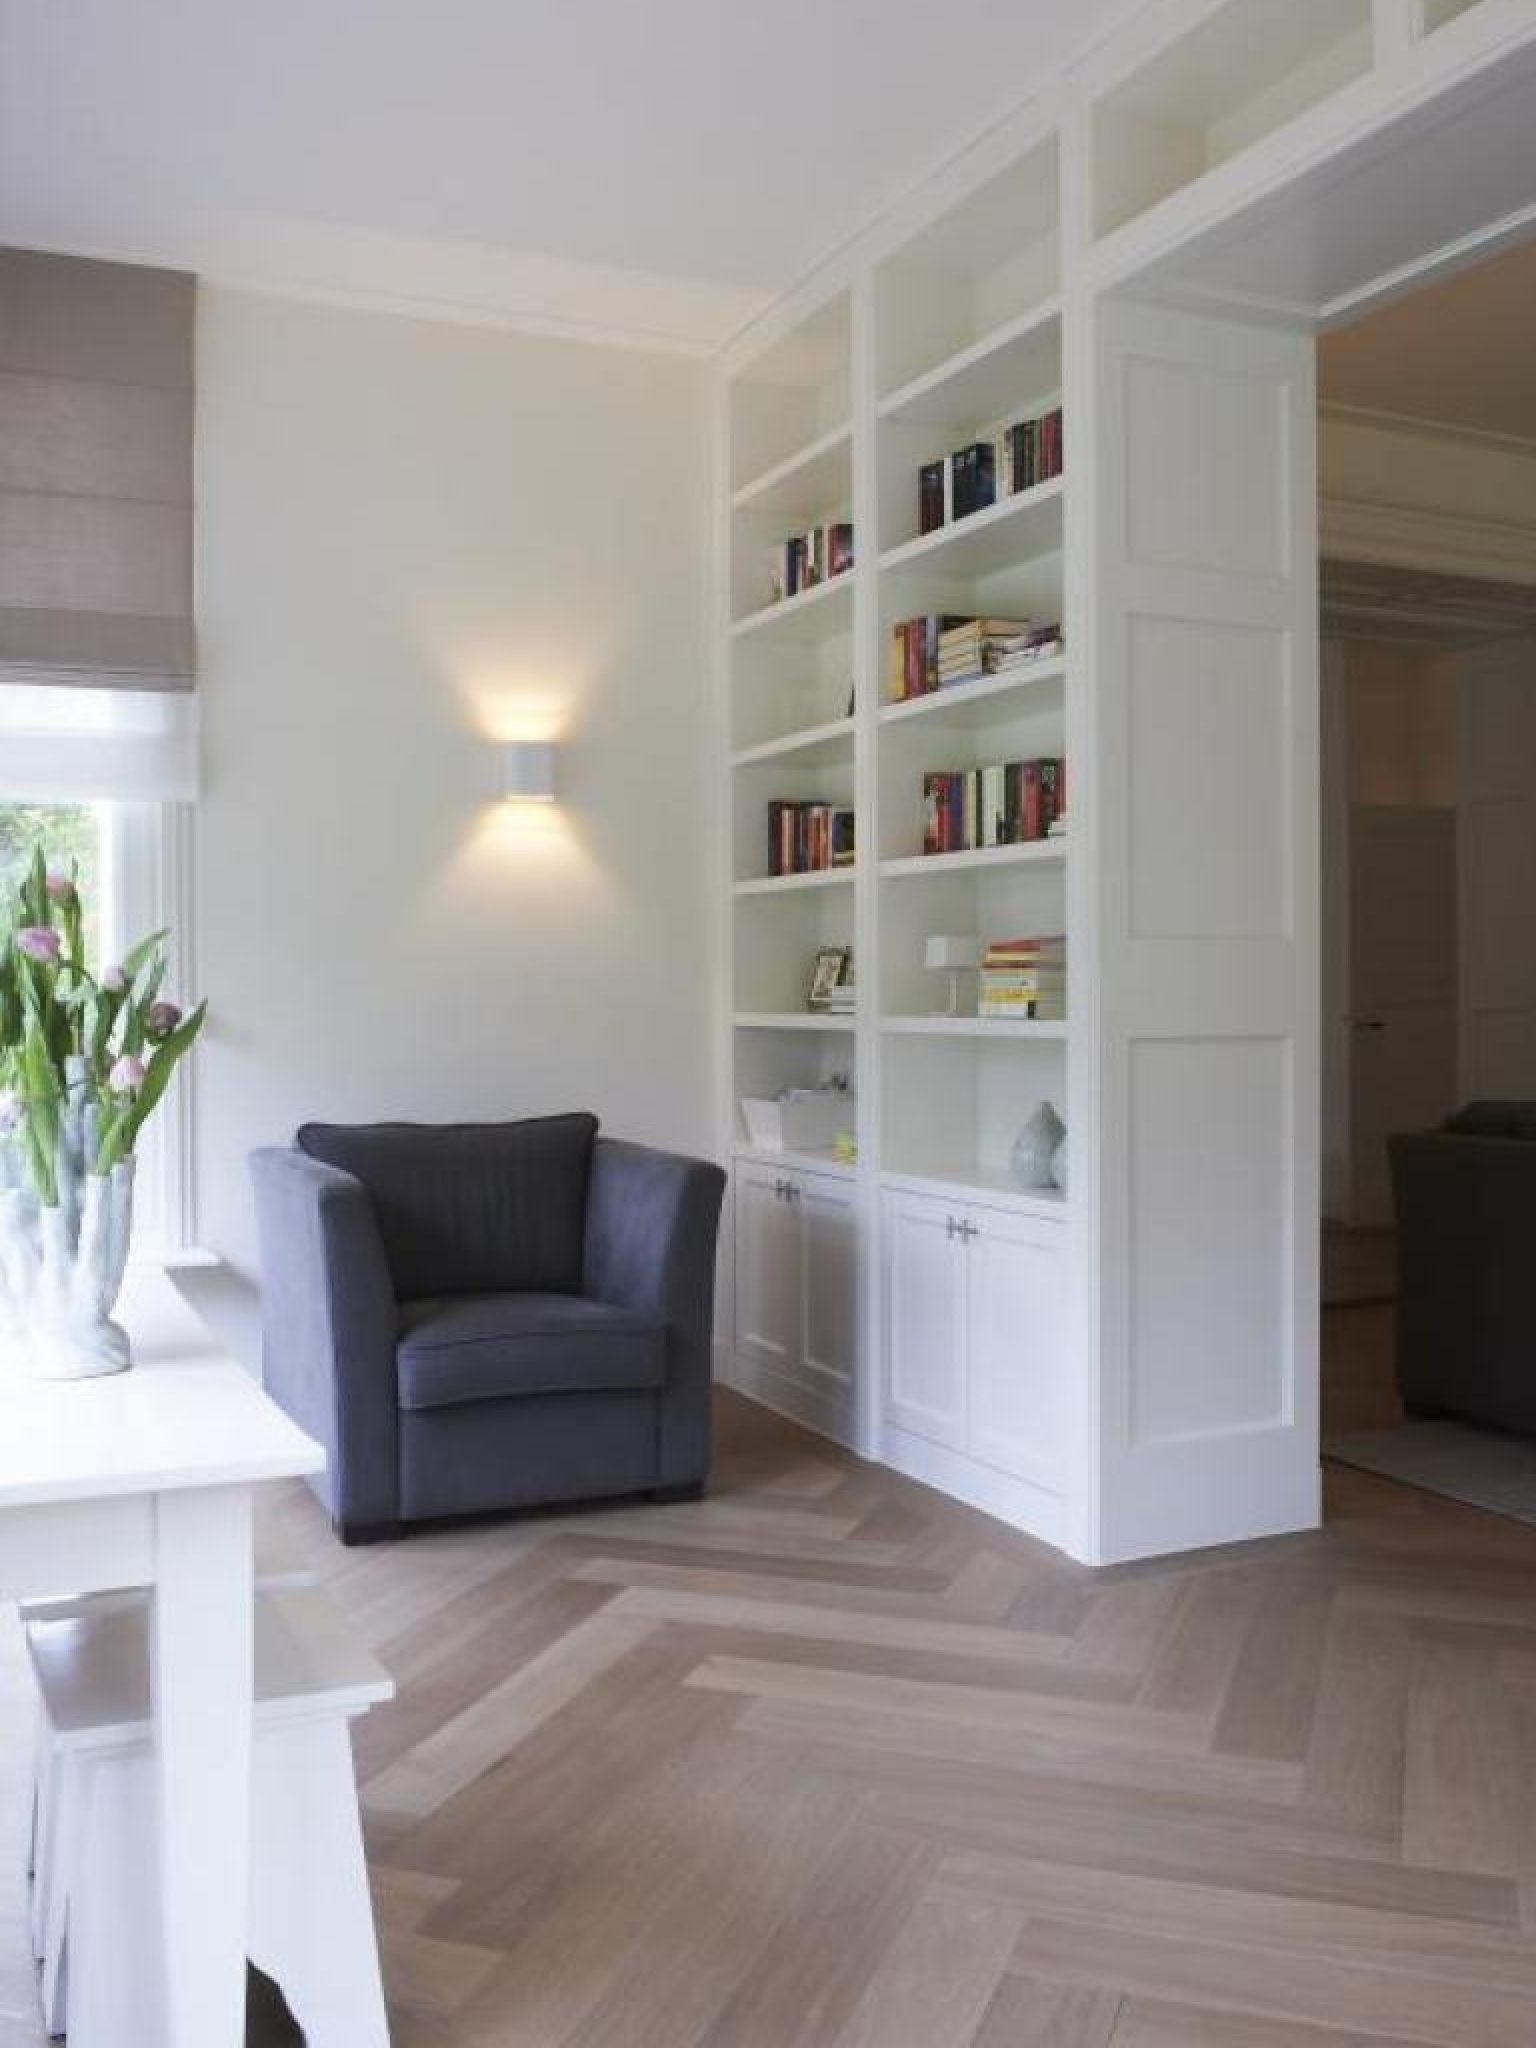 Witte Muren Woonkamer Living Room With Neutral Colors White Wall With Wooden